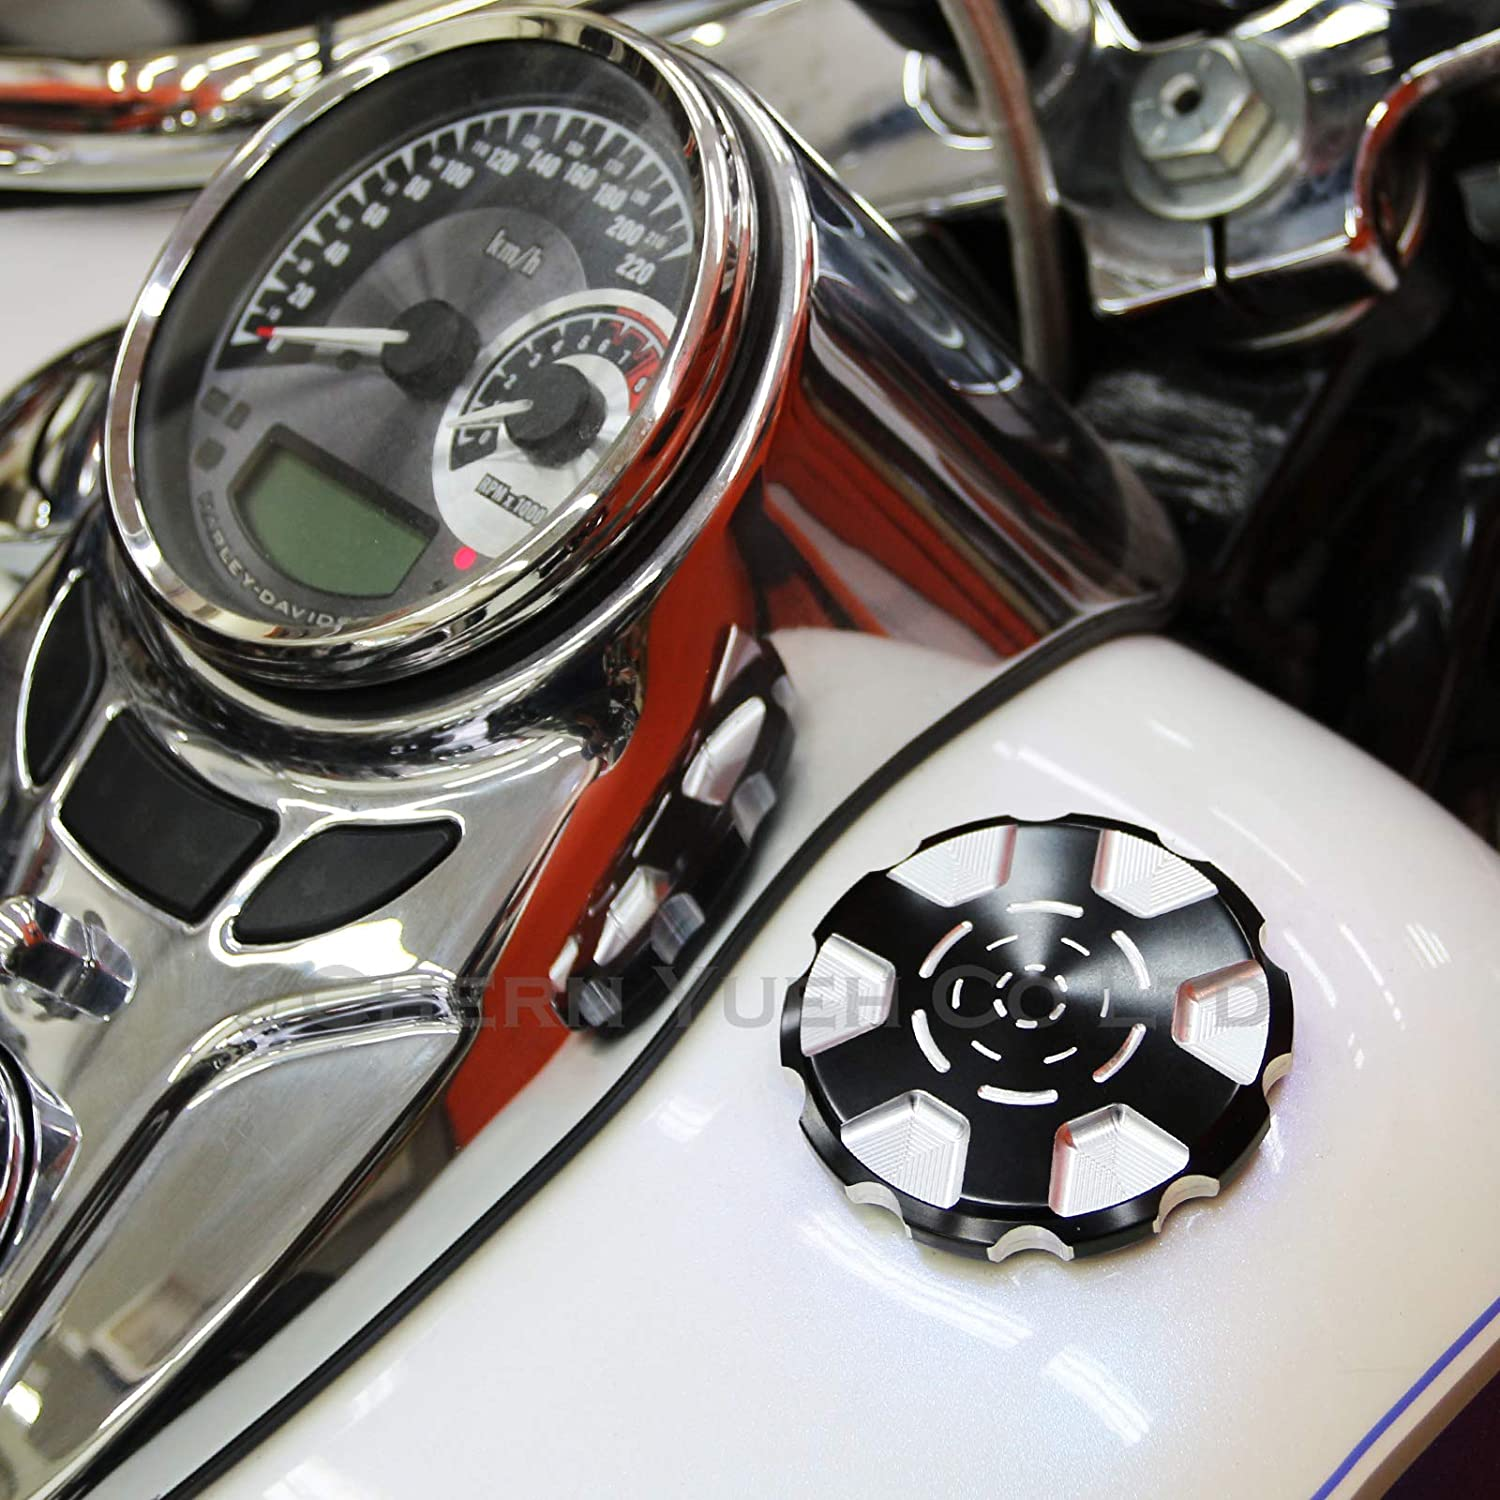 Motorcycle Gas Cap Vented Fuel Tank Cap for Harley-Davidson Sportster Touring Dyna Chrome